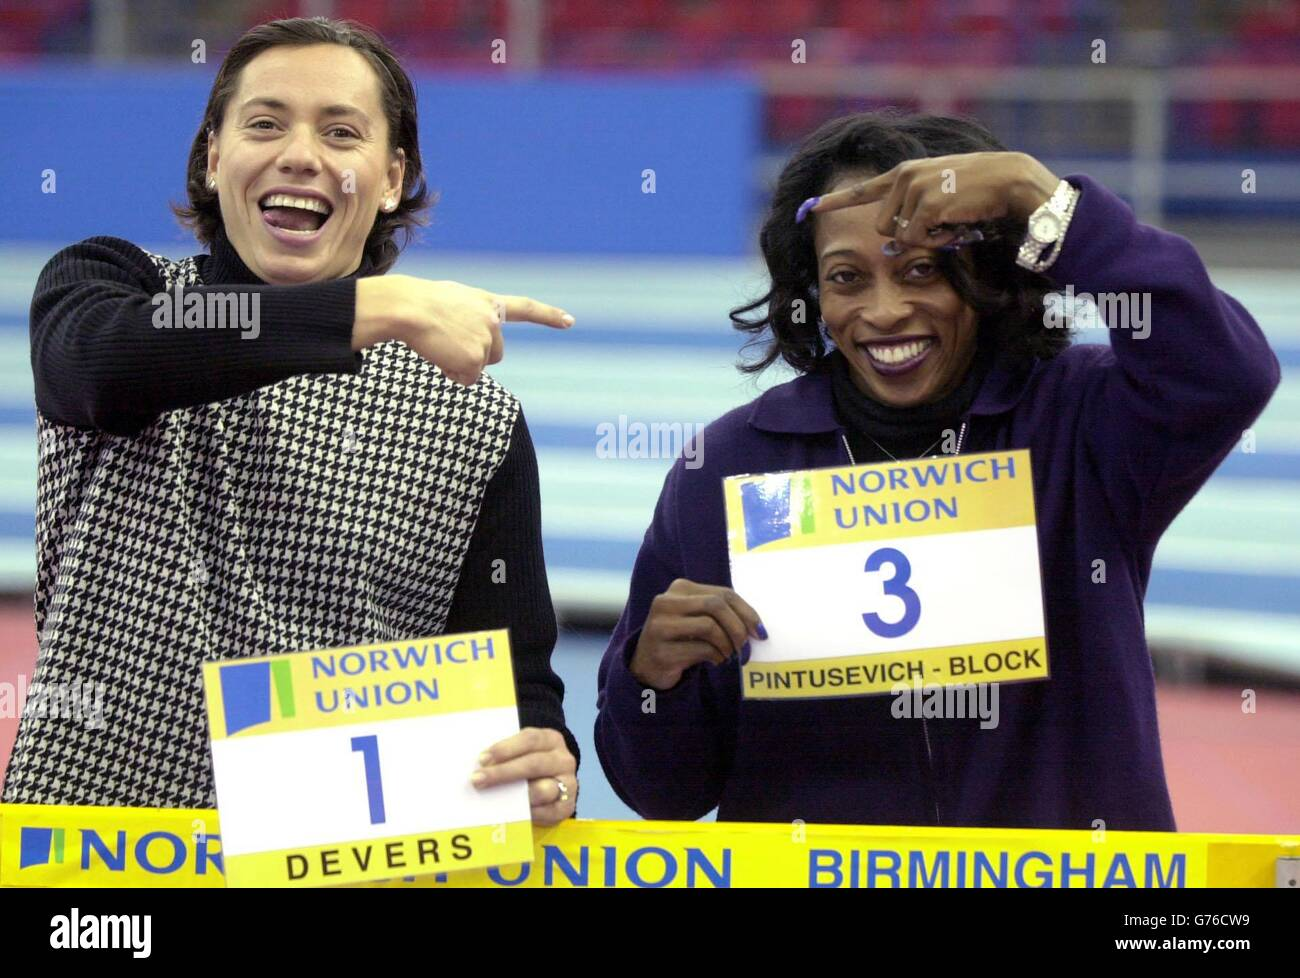 Gail Devers and Pintusevich-Block - Stock Image